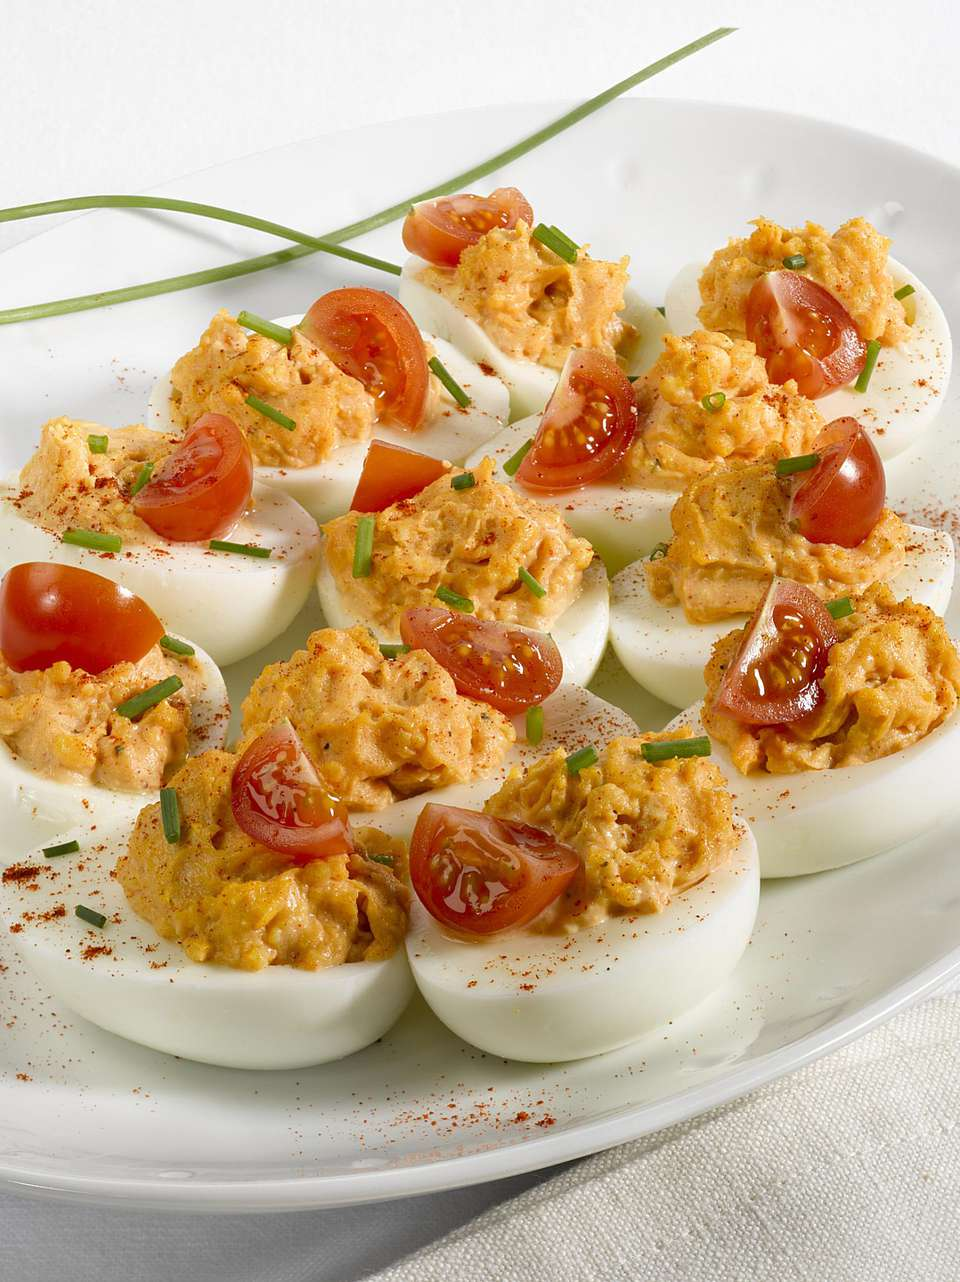 Delicious deviled eggs with tuna and tomato